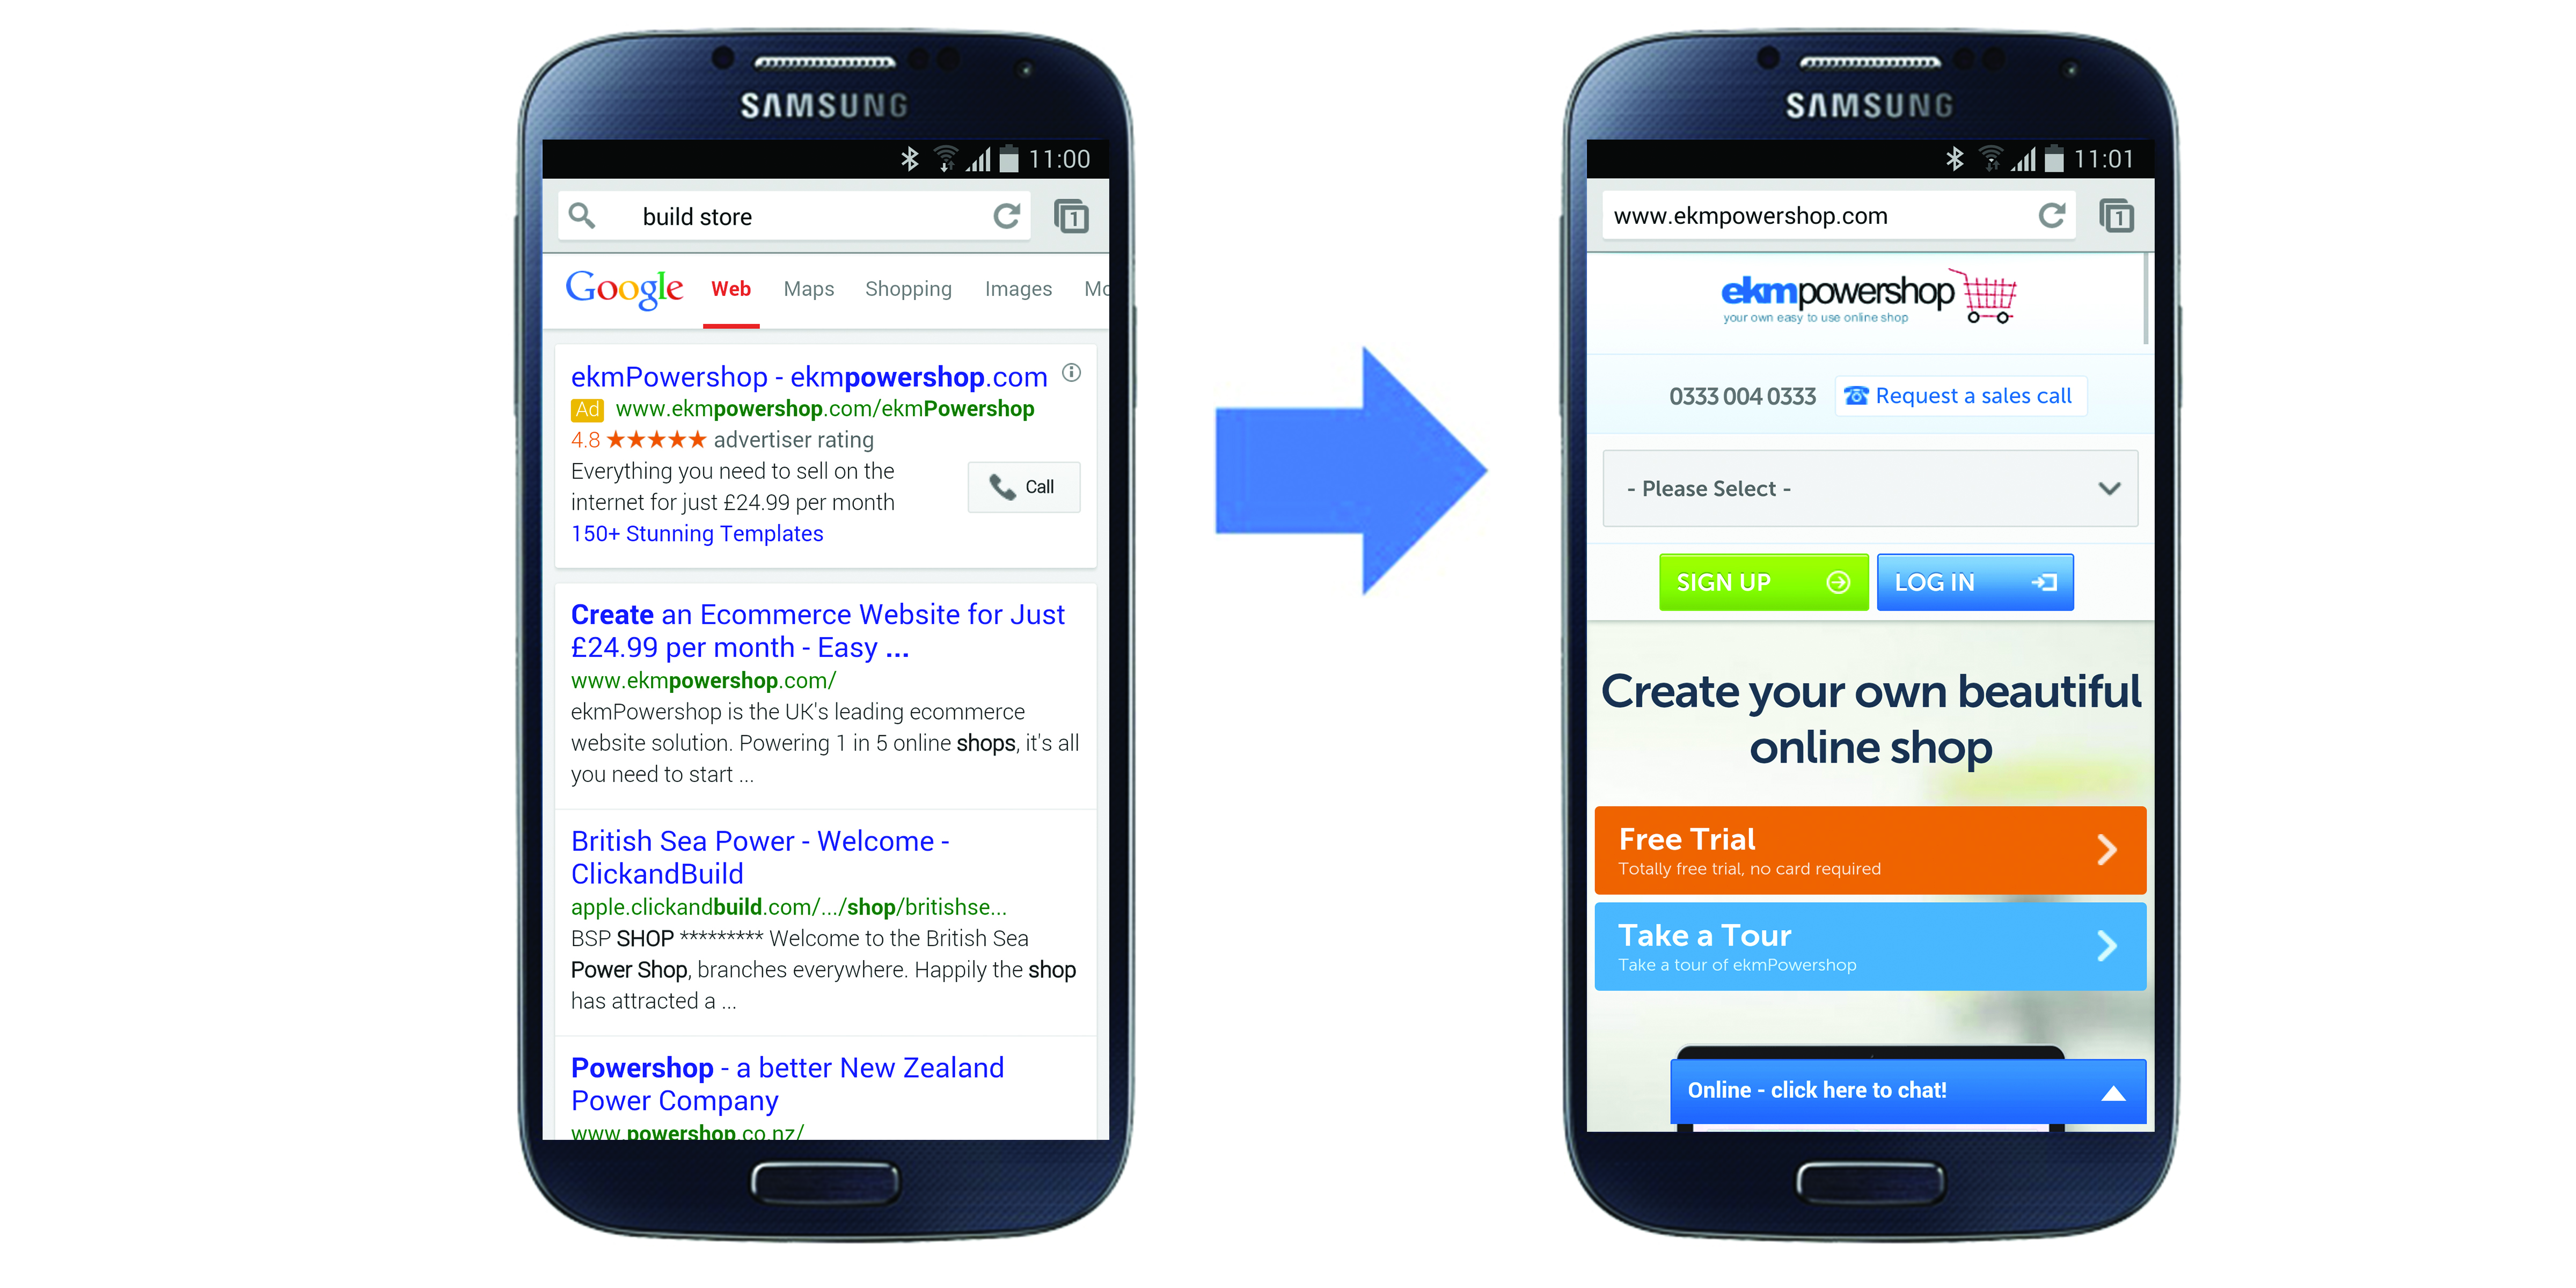 google ekmpowershop proves mobile delivers across devices lowering